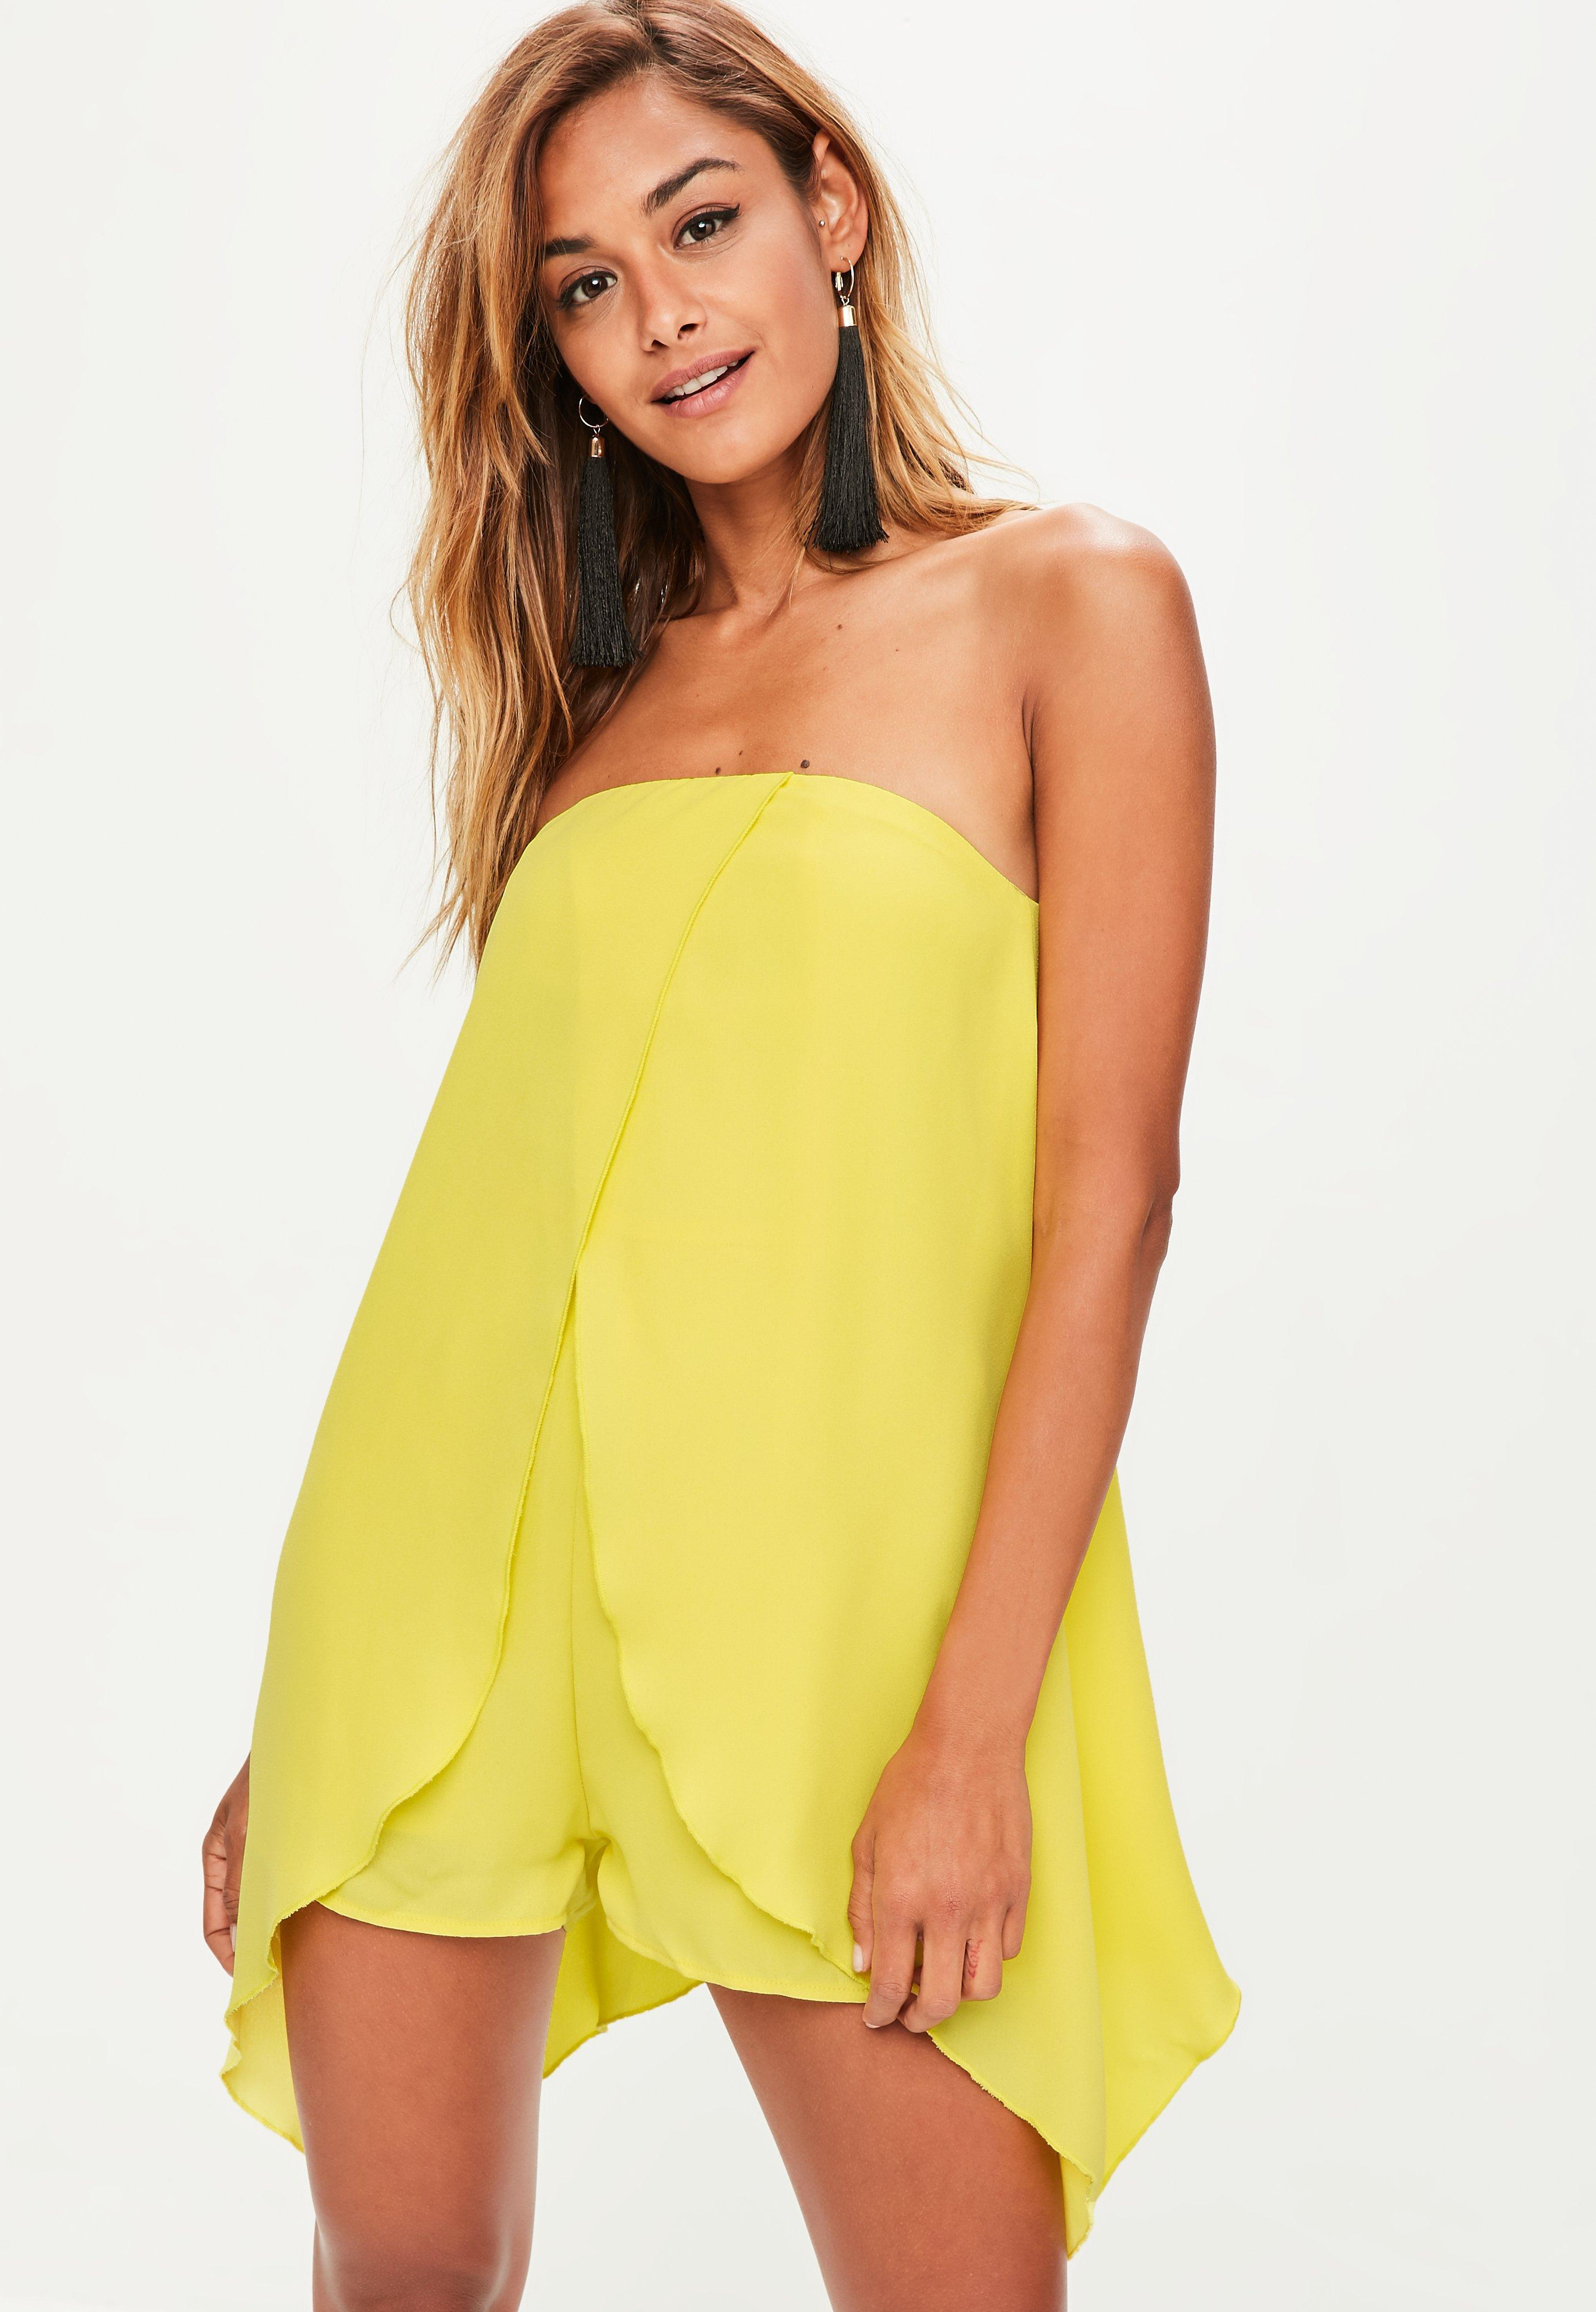 381943d7b0fa Lyst - Missguided Yellow Bandeau Double Layer Playsuit in Yellow